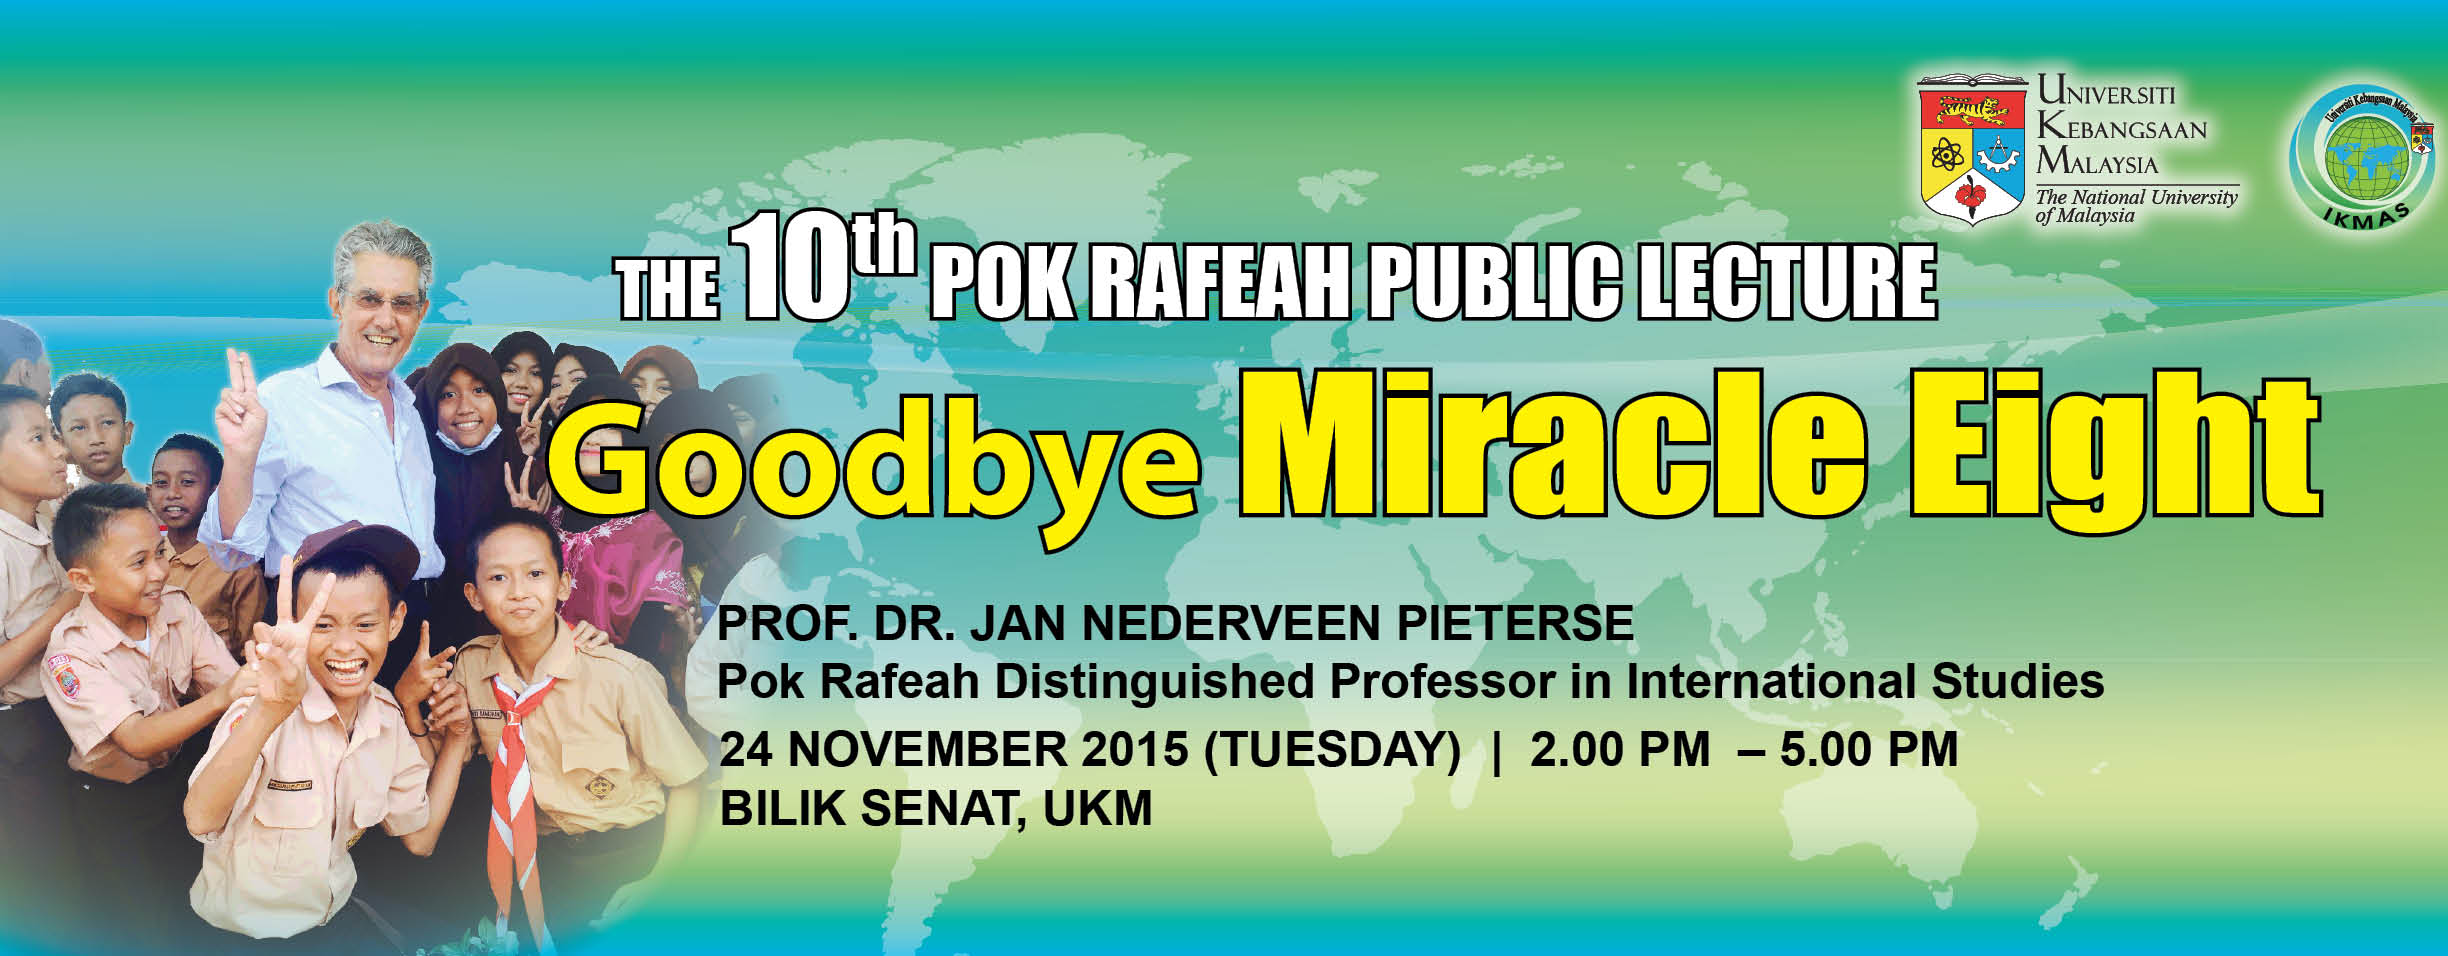 The 10th Pok Rafeah Chair Public Lecture:Good Bye Miracle Eight